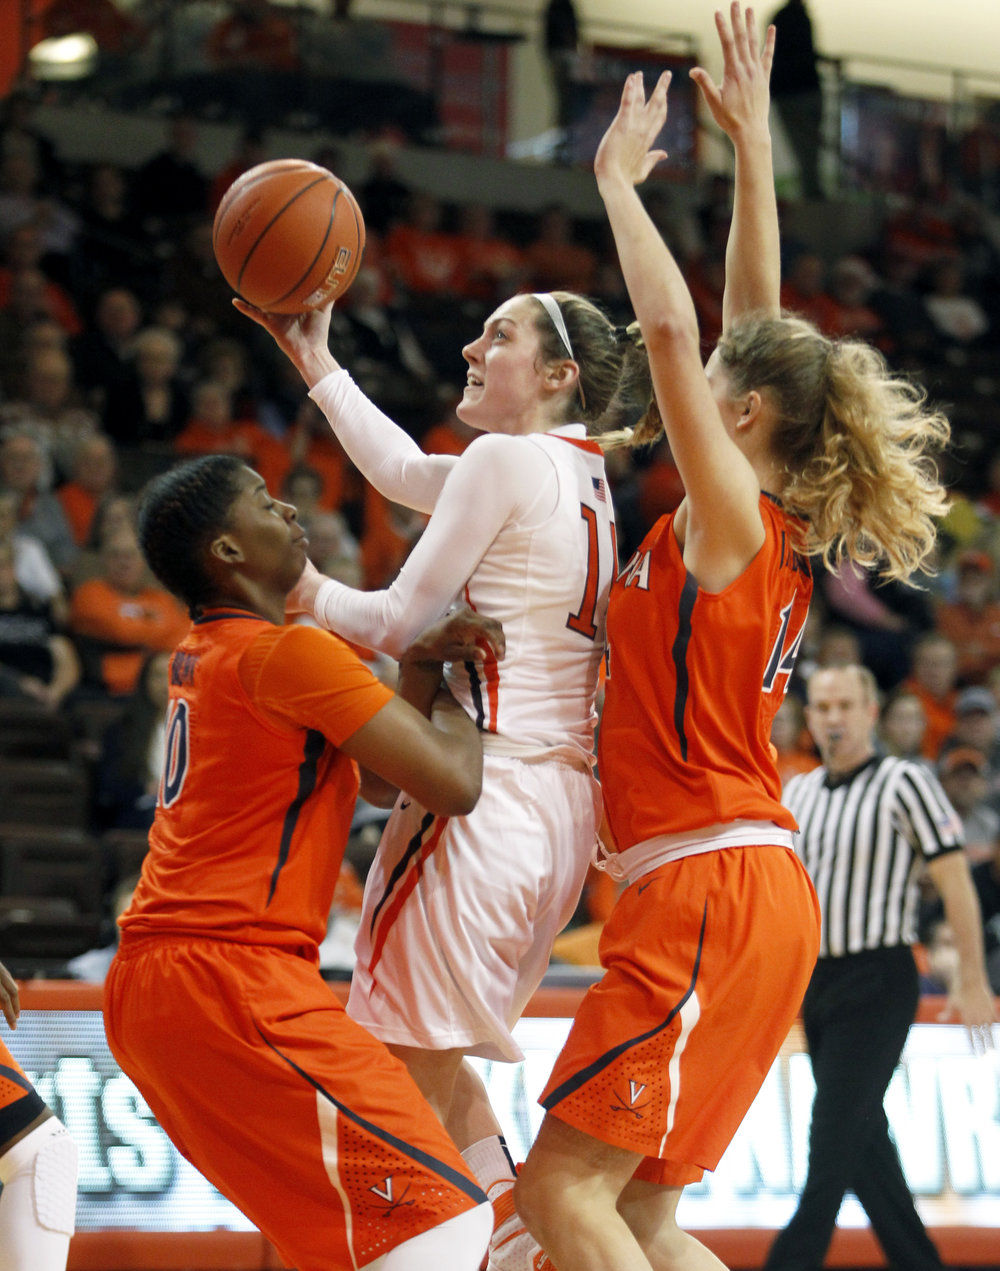 BGSU guard Rachel Myers (11) jumps for a layup while under heavy coverage from University of Virginia guard J'Kyra Brown (10) and forward Lisa Jablonowski (14) during the women's basketball game at the Stroh Center in Bowling Green, Oh. on Sunday, Dec. 4, 2016.